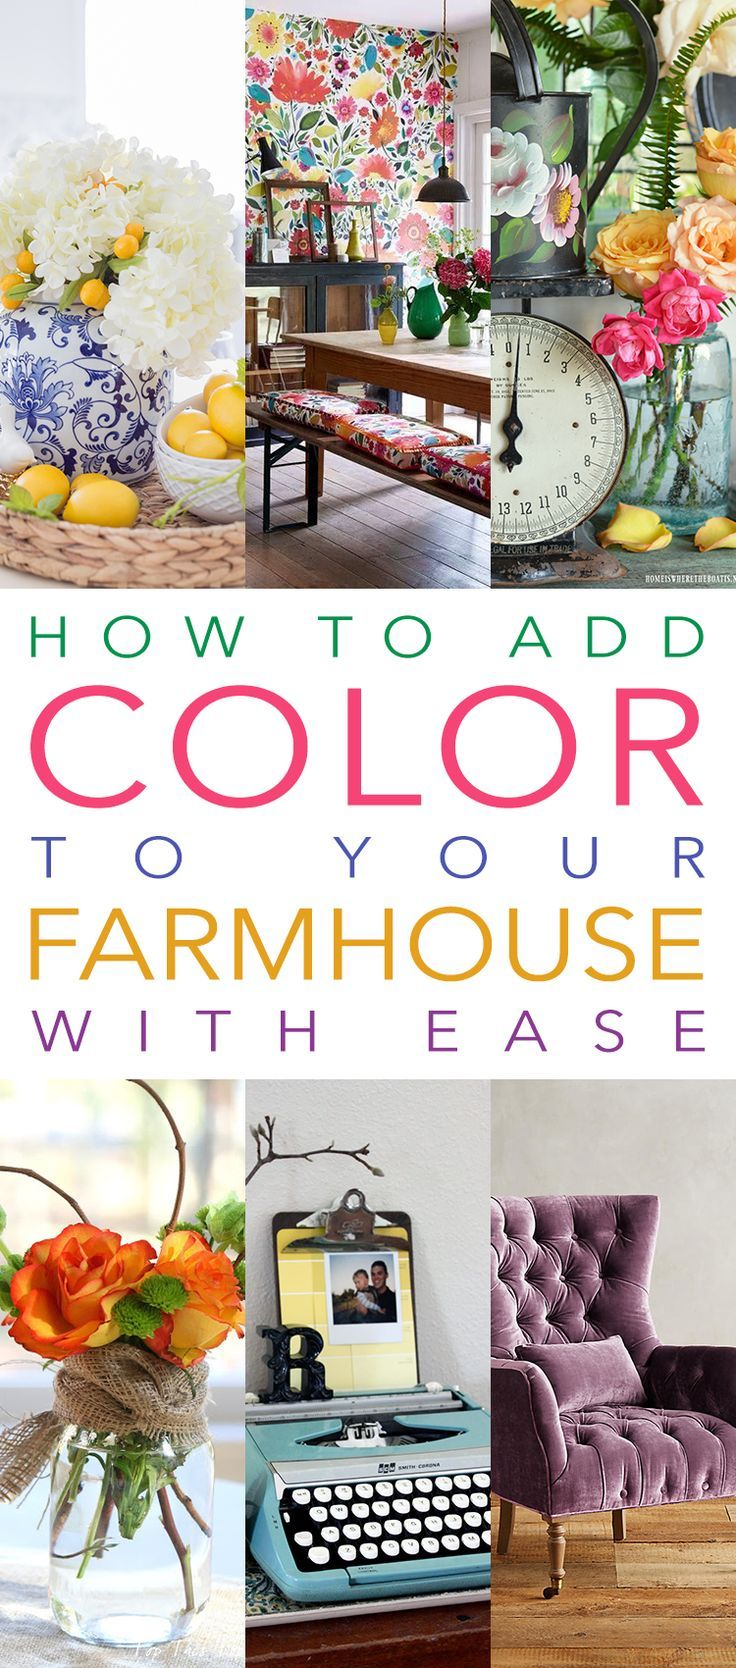 How To Add Color To Your Farmhouse With Ease | Farmhouse ...